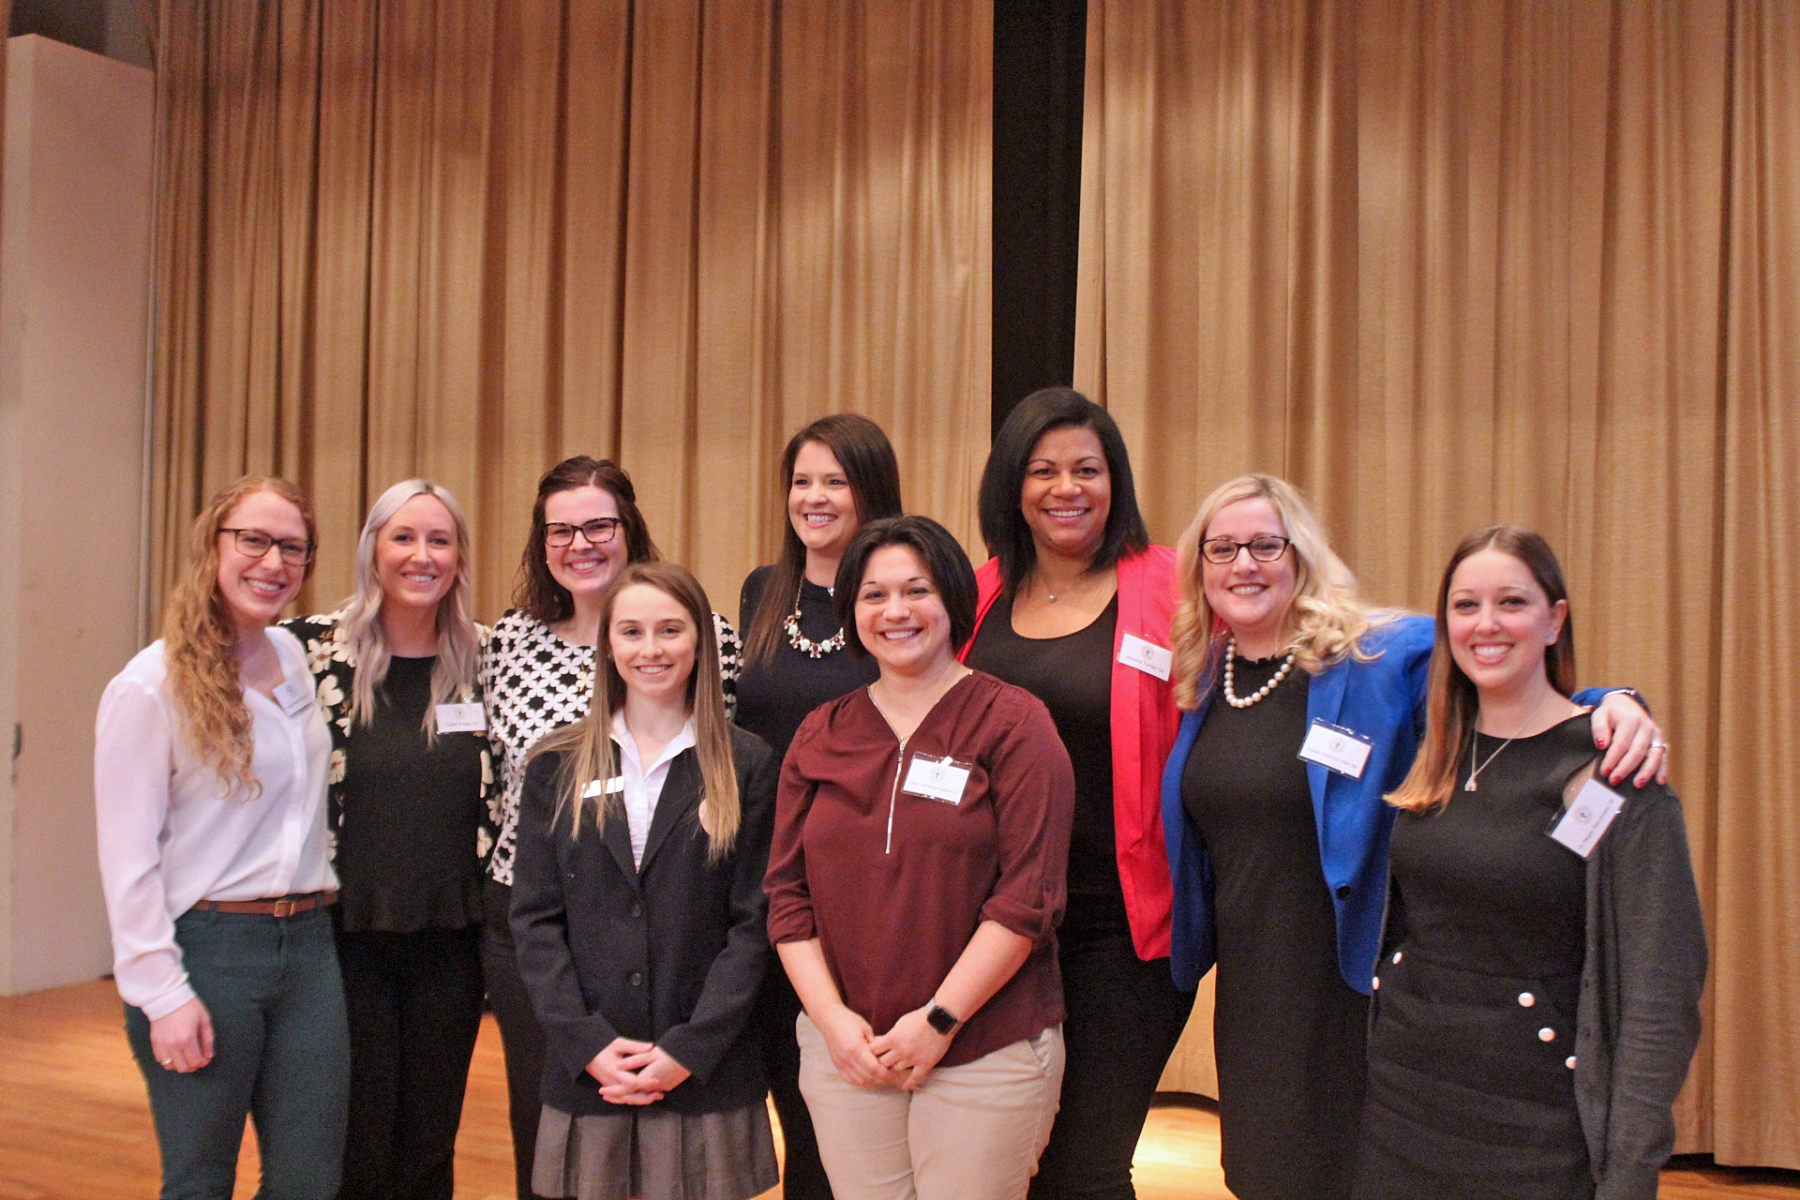 Mount Mercy Academy's guidance department and Alumnae Association recently sponsored a career day for the students. The event featured a panel discussion with eight successful alumnae from a variety of fields.  The event was titled `Girls Can Do Anything`. Taking part ion the event are (front row left to right) Student moderator Olivia Larson and Susan Dzierzewski Steblein. (back row left to right) Peggy Klavoon Cannan, Claire Kelley, Mary Reidy, Peggy Shea Sherber, Jessica Turner, Susan Anderson Was and Dr. Megan Wierchowski.